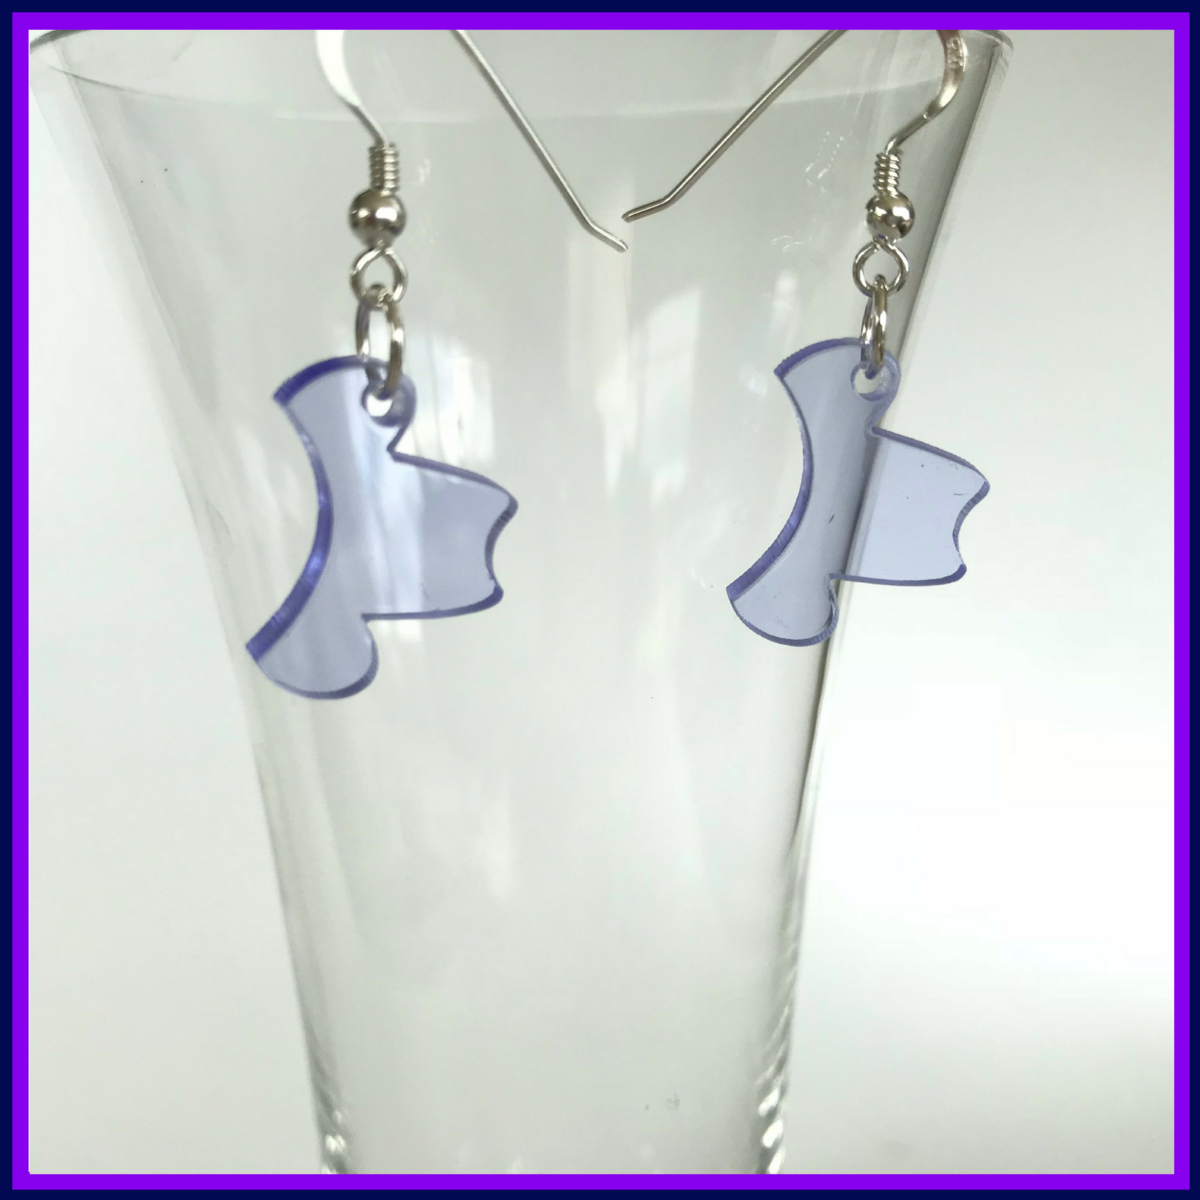 Cowboy hat earrings FREEPOST UK - product images  of